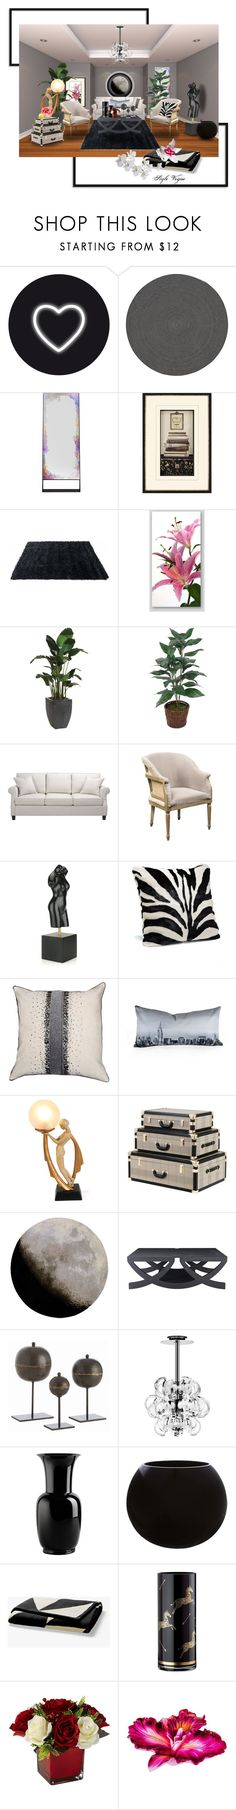 """""""Classic elegance"""" by lamipaz ❤ liked on Polyvore featuring interior, interiors, interior design, home, home decor, interior decorating, Seletti, CB2, Ethan Allen and Kelly Wearstler"""